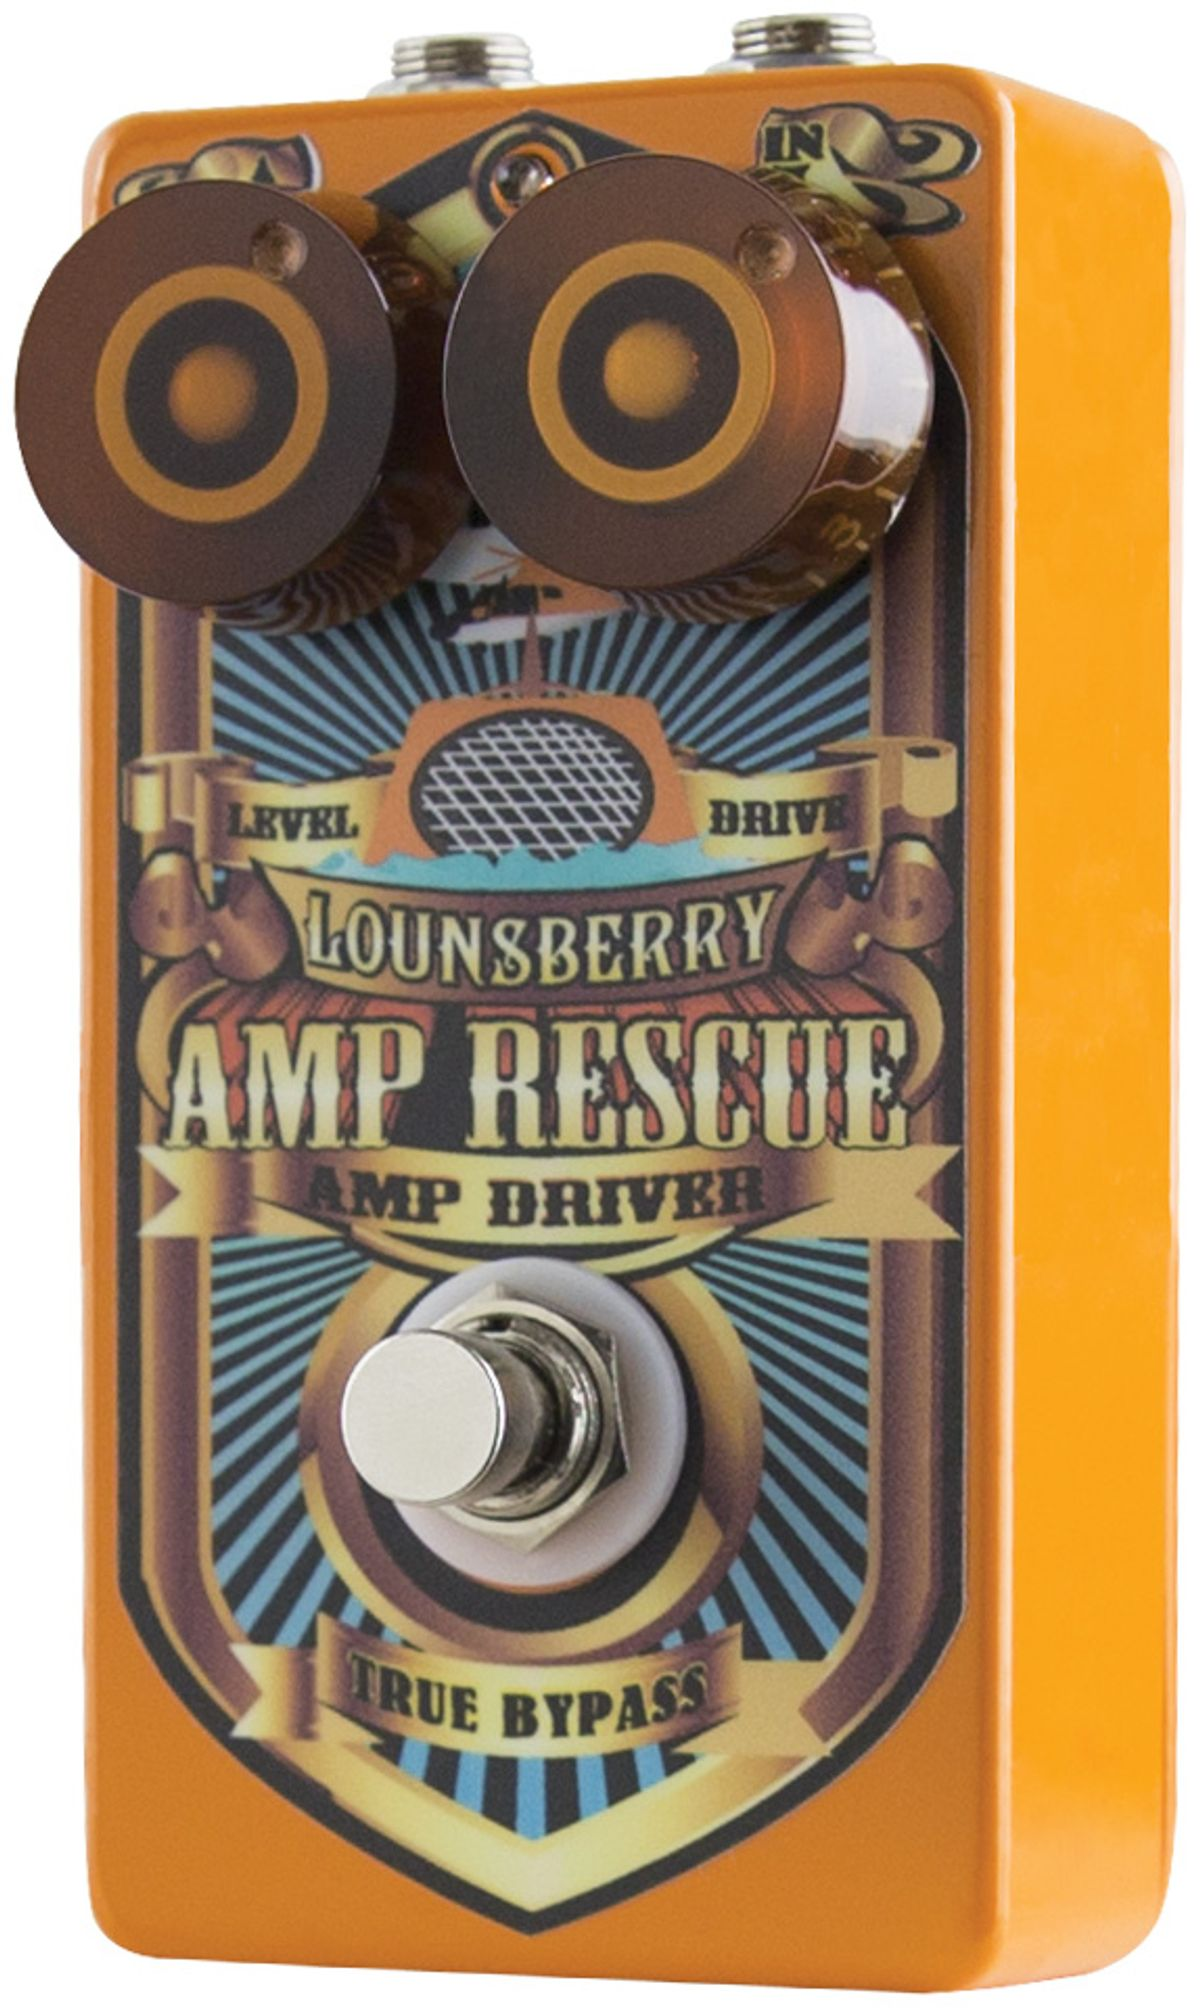 Quick Hit: Lounsberry Amp Rescue Review